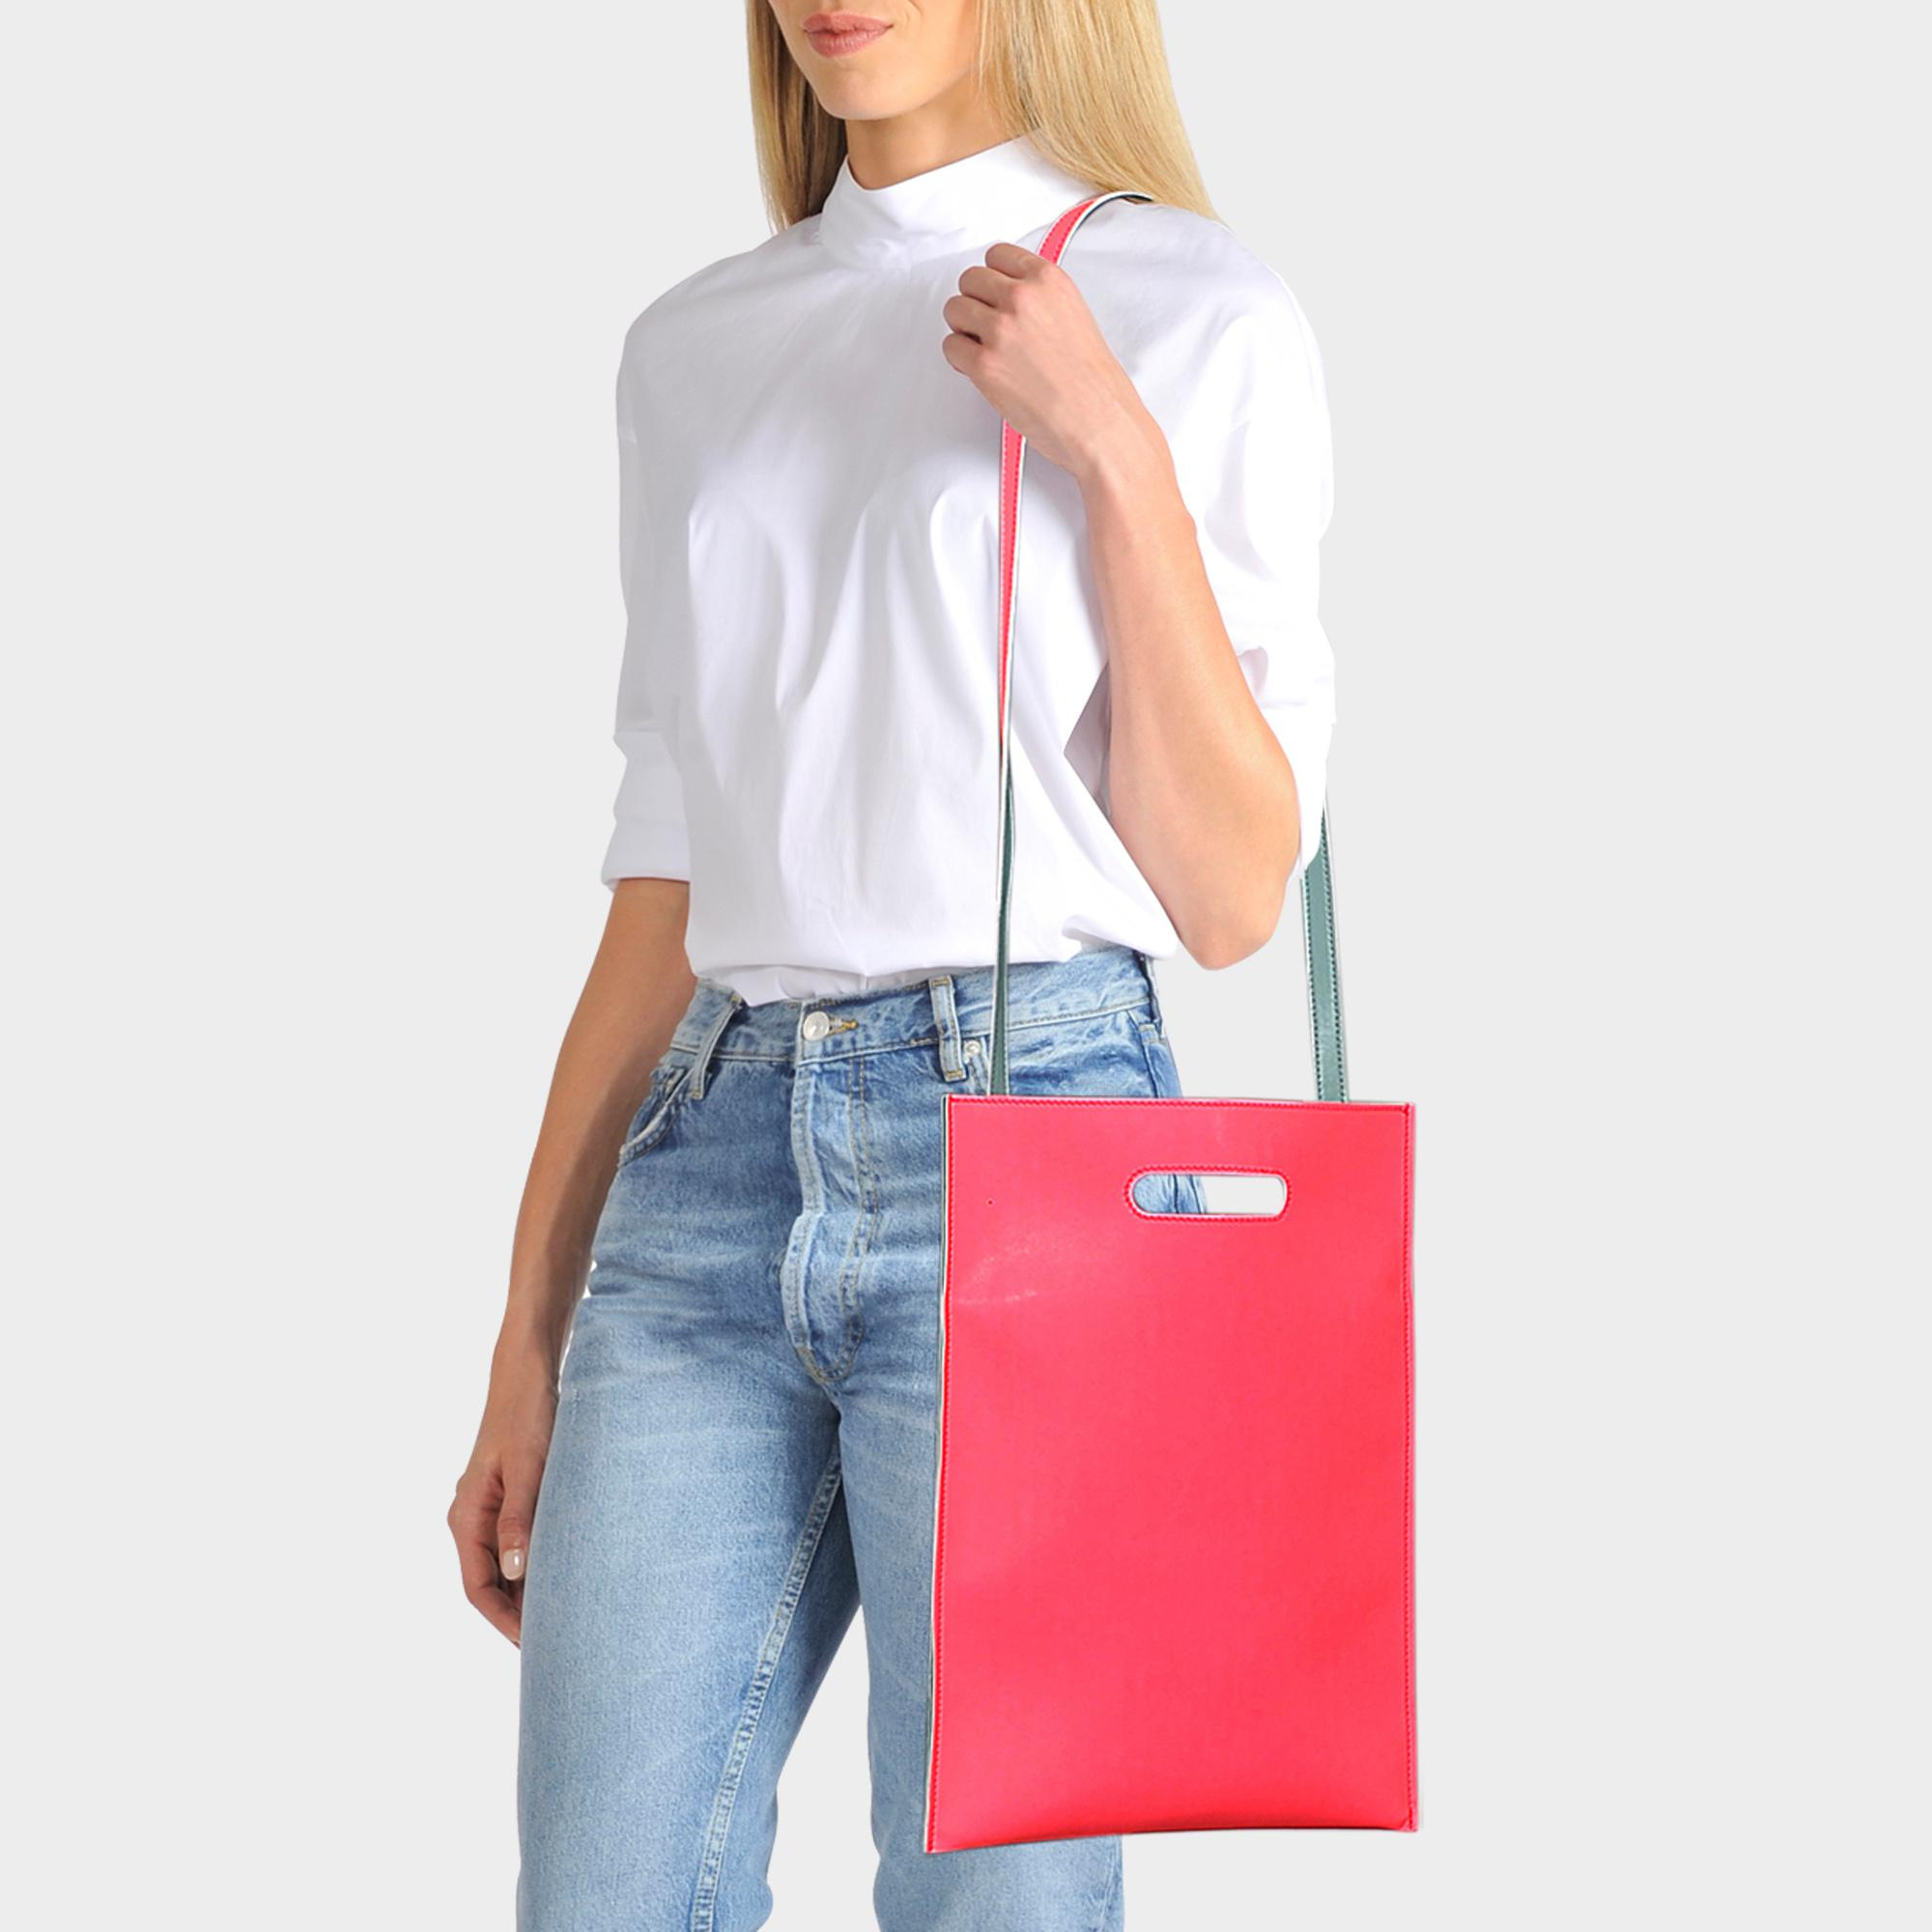 Hand Carry Plastic Bag in Neon Pink Synthetic Leather Maison Martin Margiela 01Ws2tTvFH